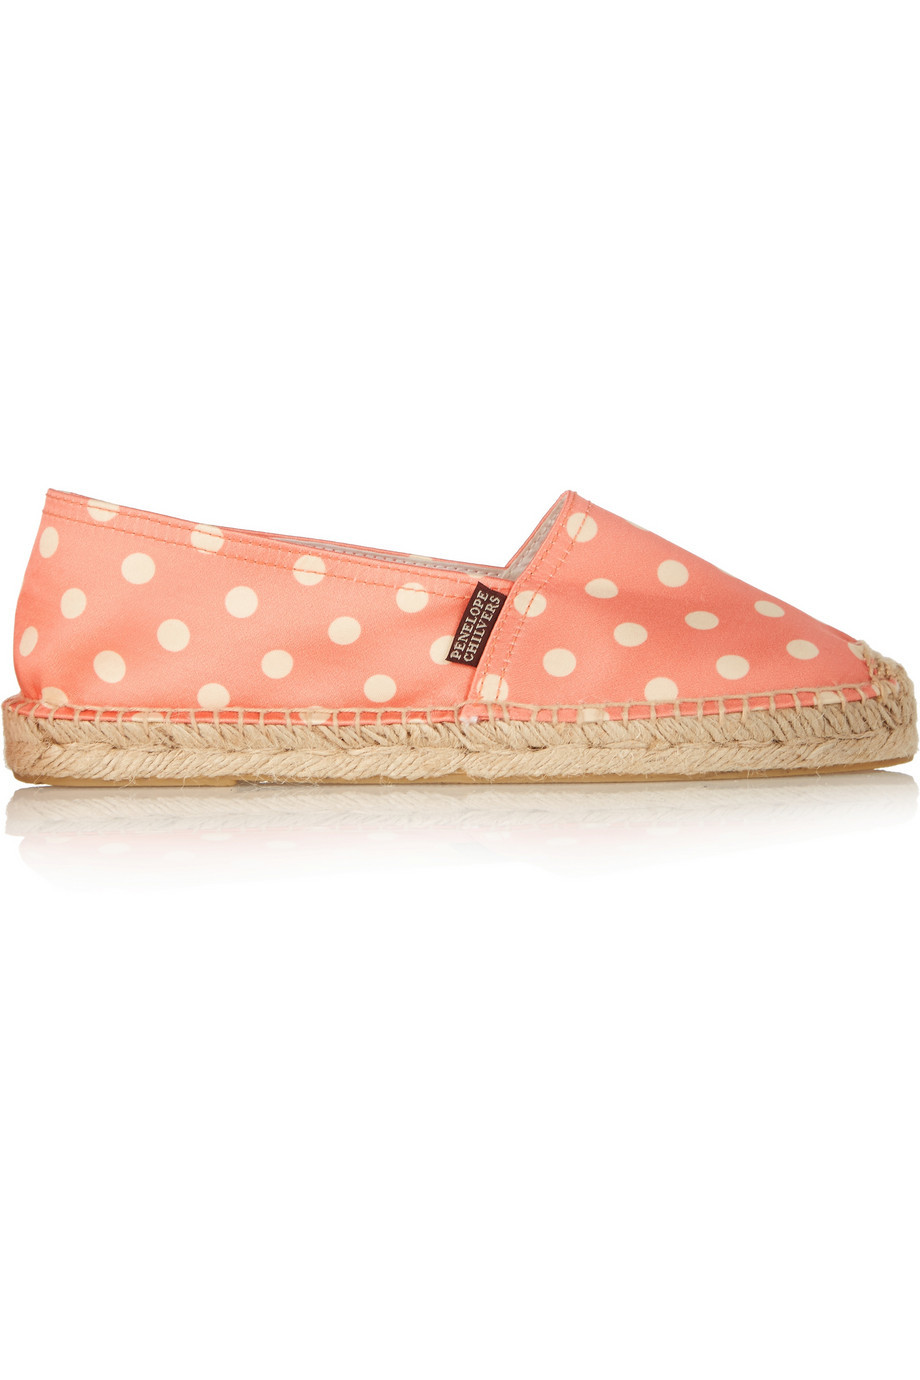 Polka Dot Satin Espadrilles Coral - predominant colour: ivory/cream; secondary colour: pink; occasions: casual, holiday; material: fabric; heel height: flat; toe: round toe; finish: plain; pattern: polka dot; style: espadrilles; season: a/w 2015; wardrobe: highlight